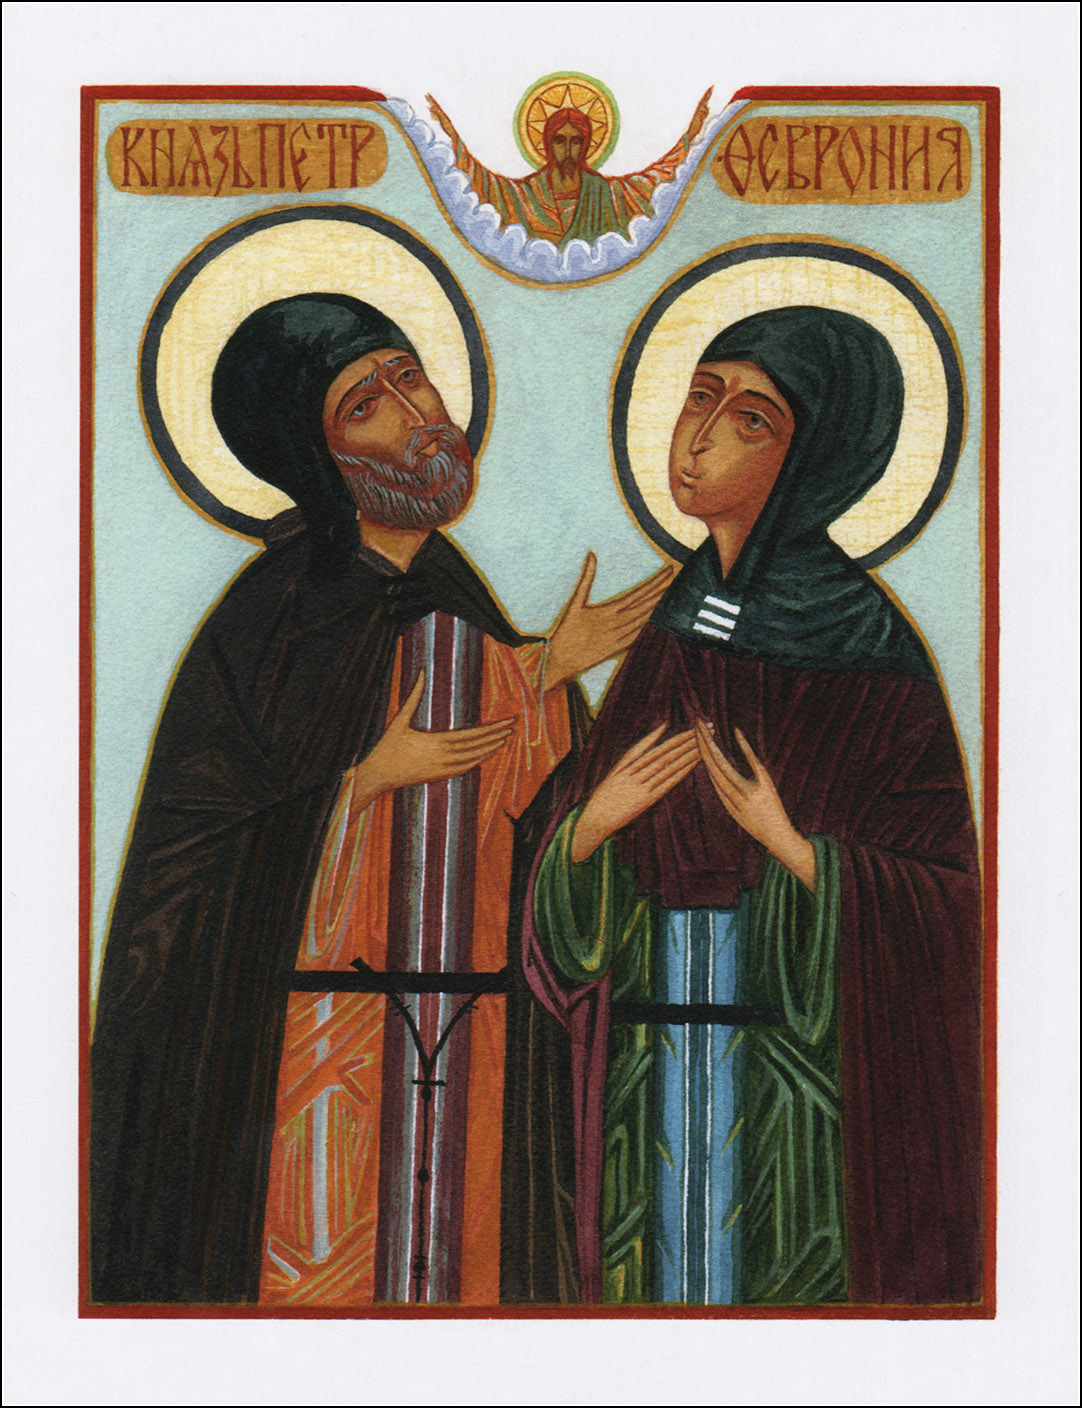 Byzantine texas archpriest serge kotar on family love and pravoslavie today we celebrate the memories of sts peter and fevronia known in the russian church as the patron saints of family love and fidelity buycottarizona